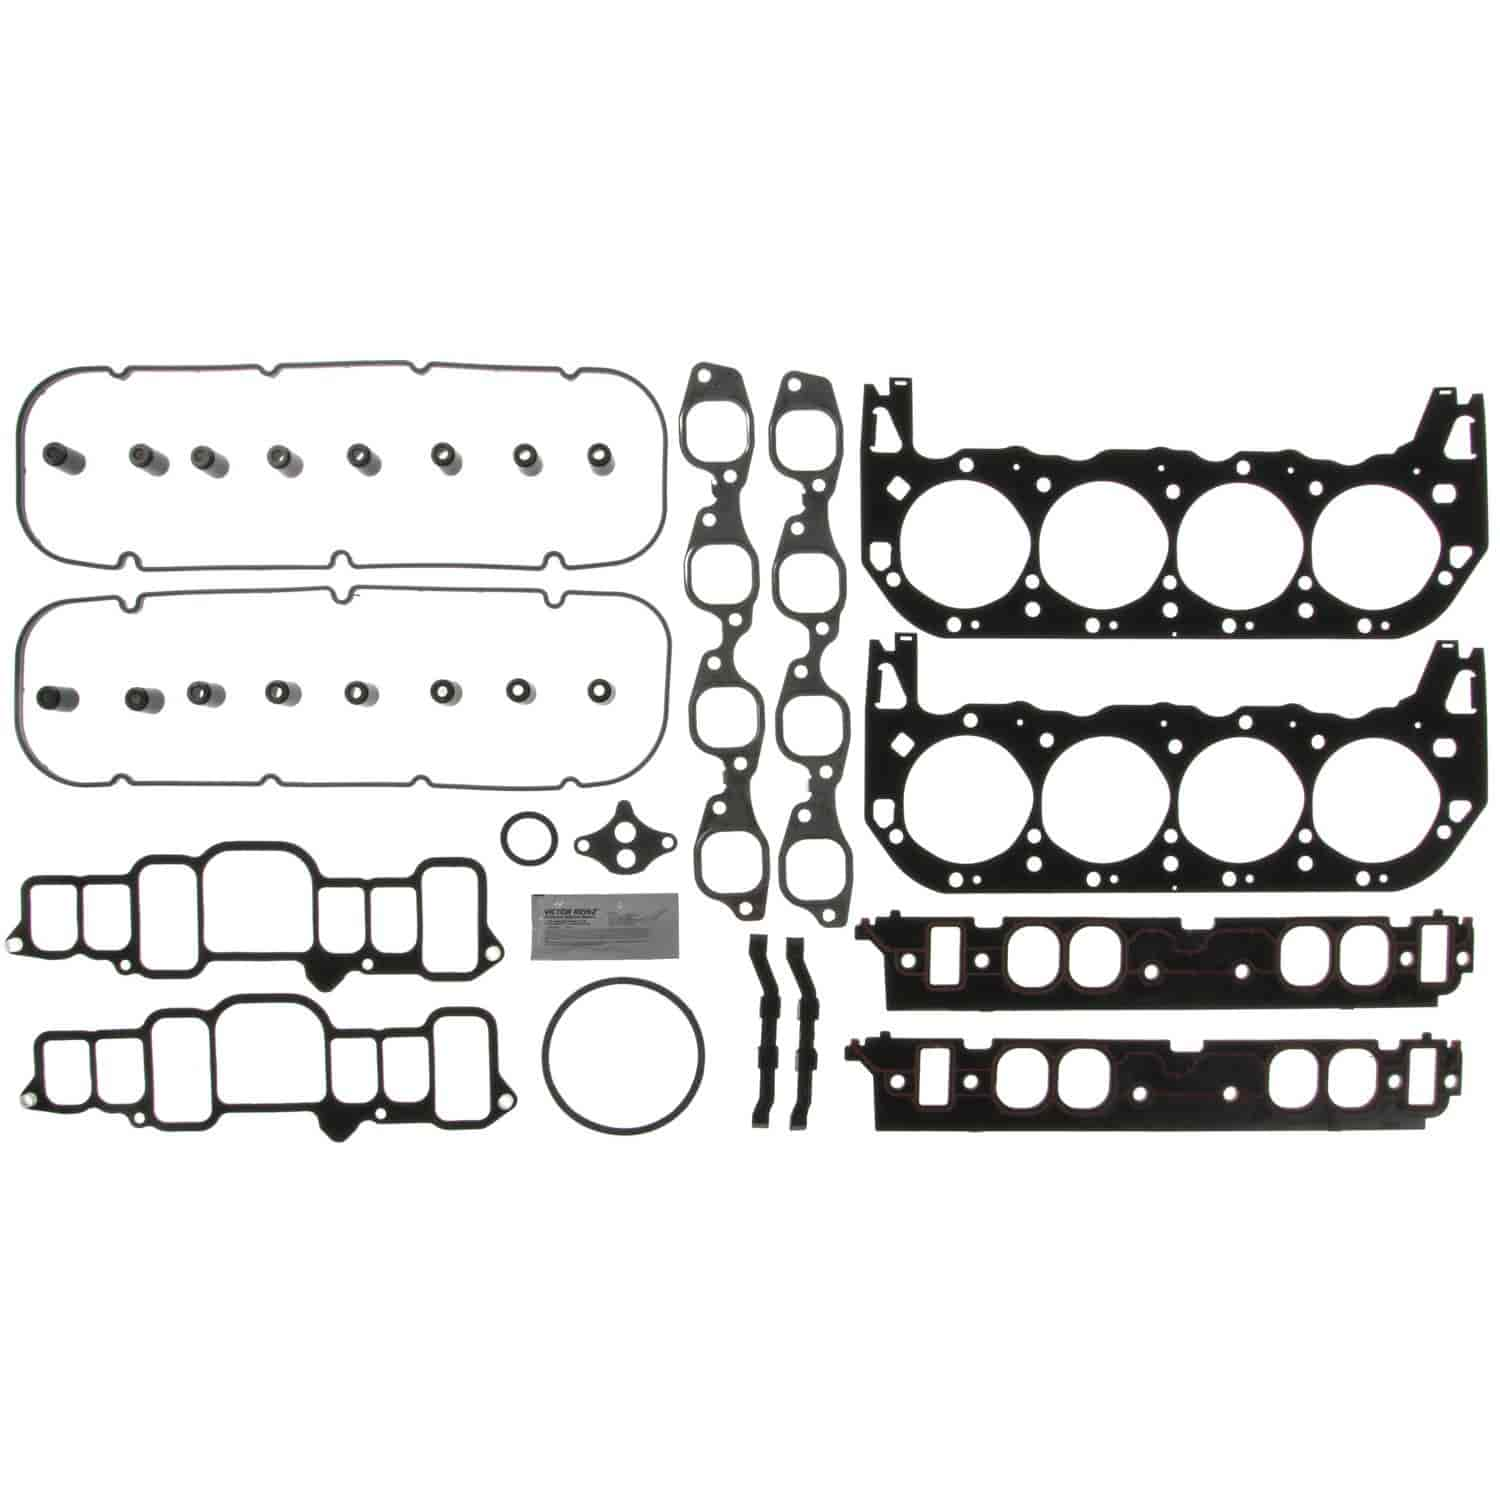 Clevite Mahle Hs B Head Gasket Set Big Block Chevy 454 Vortec 7 4l